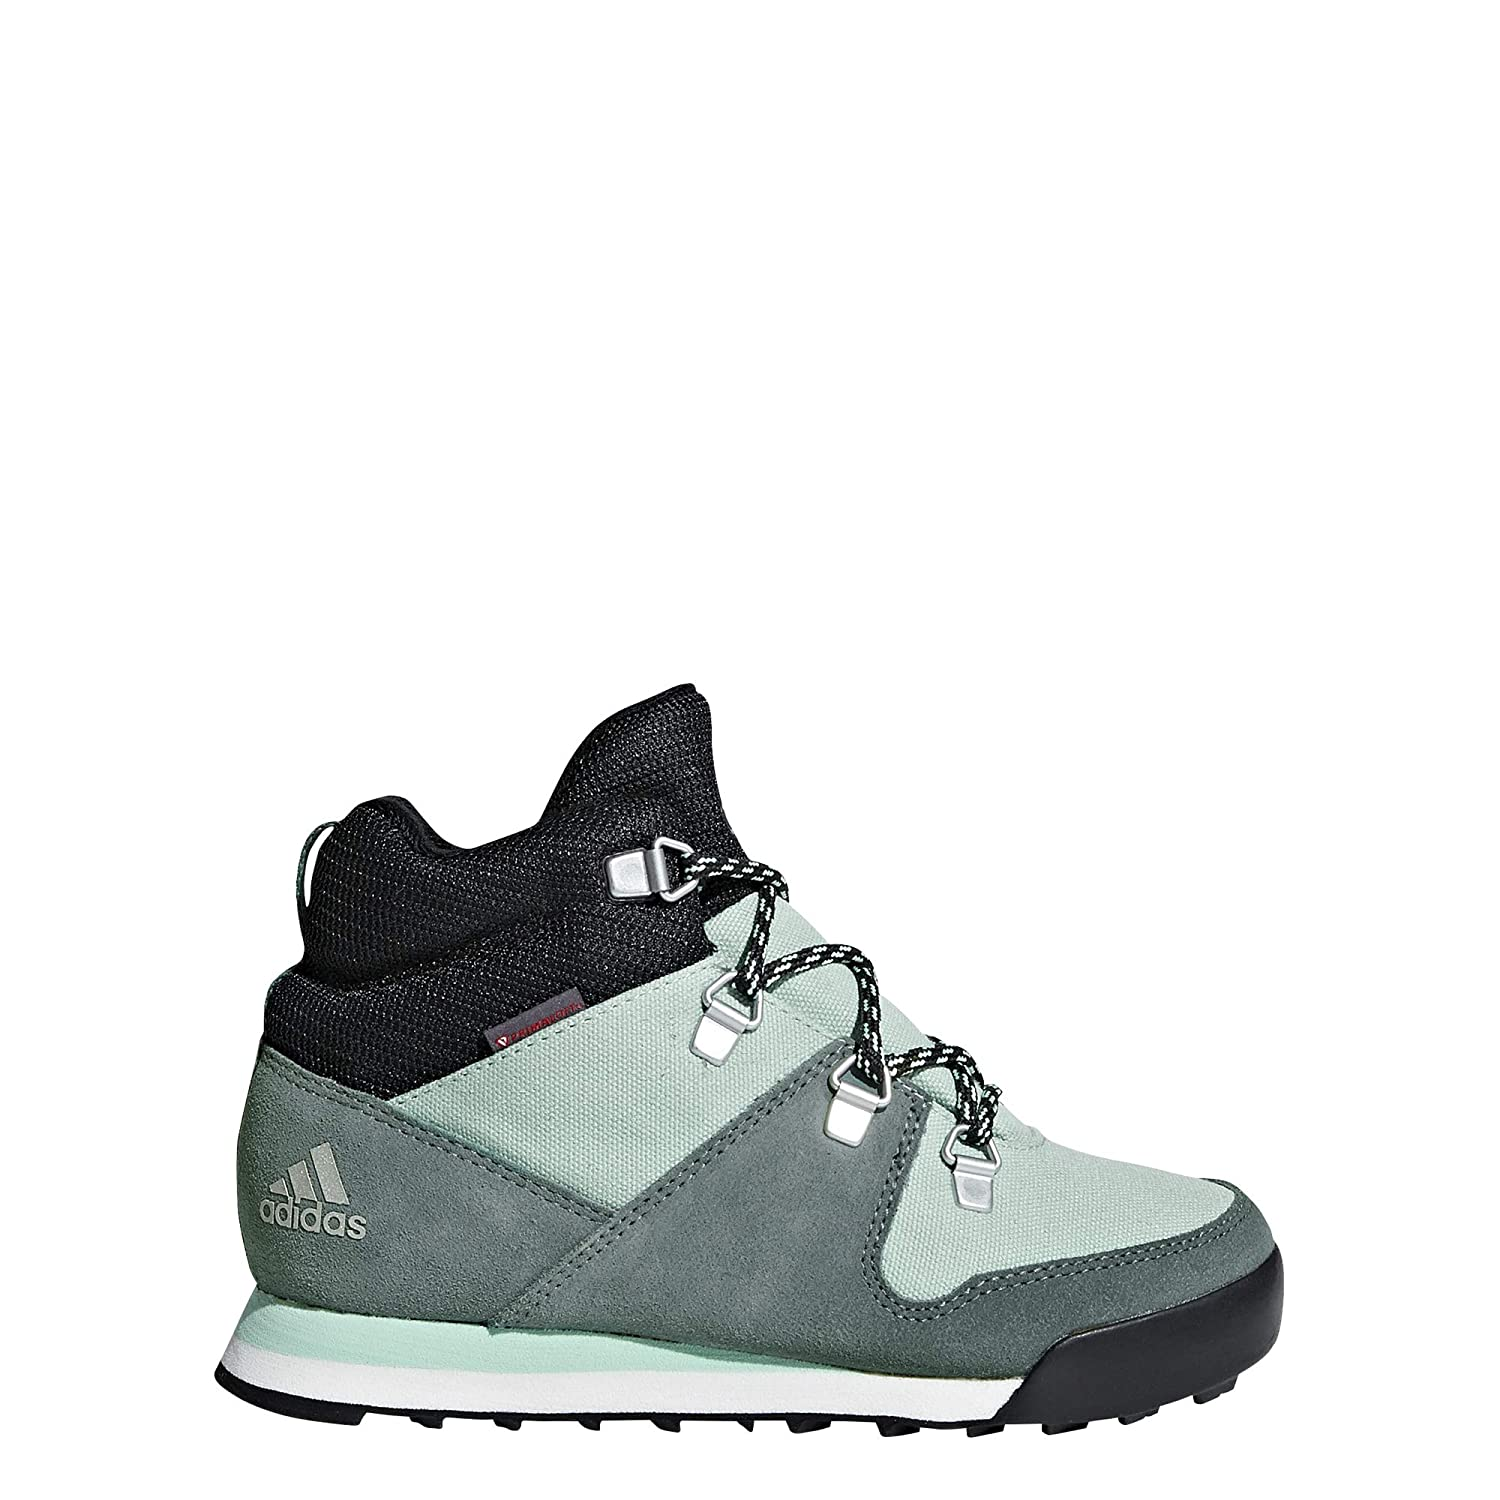 adidas Unisex Kids' Climawarm Snowpitch High Rise Hiking